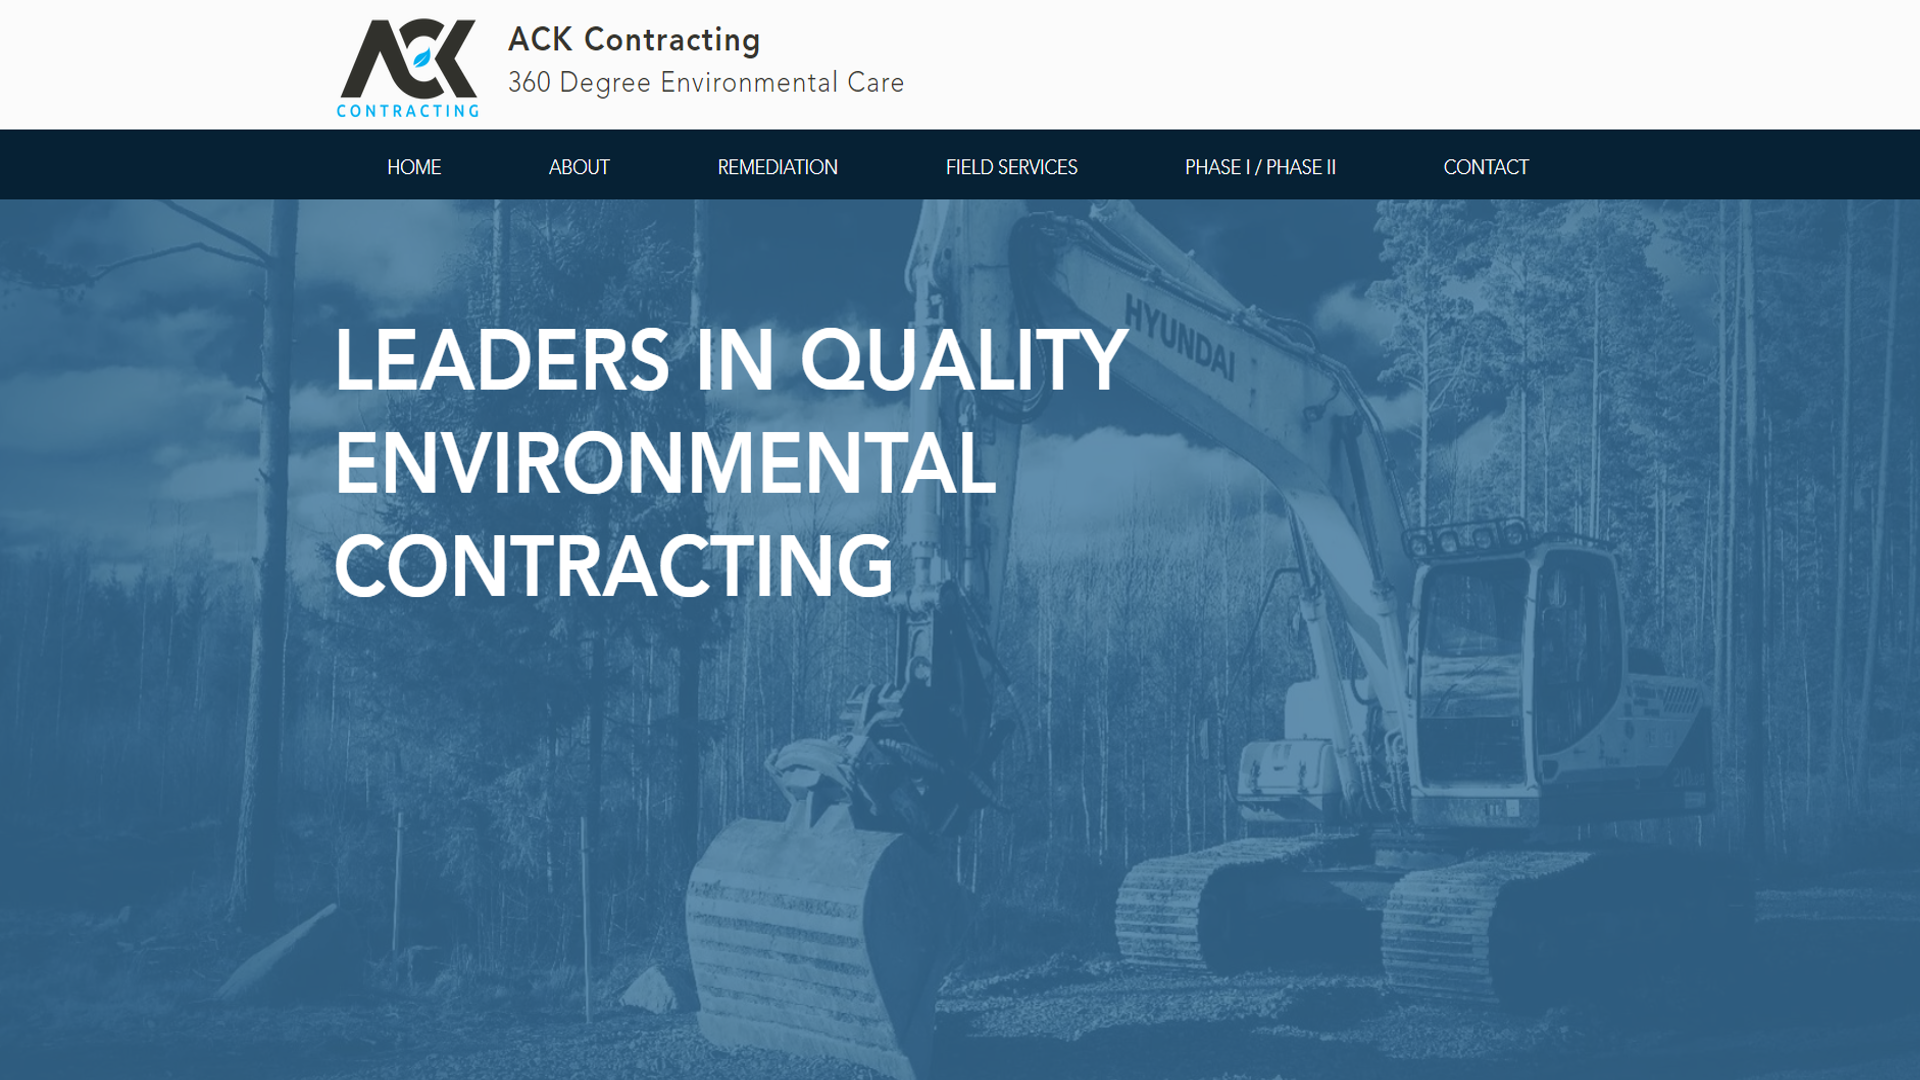 ACK Contracting